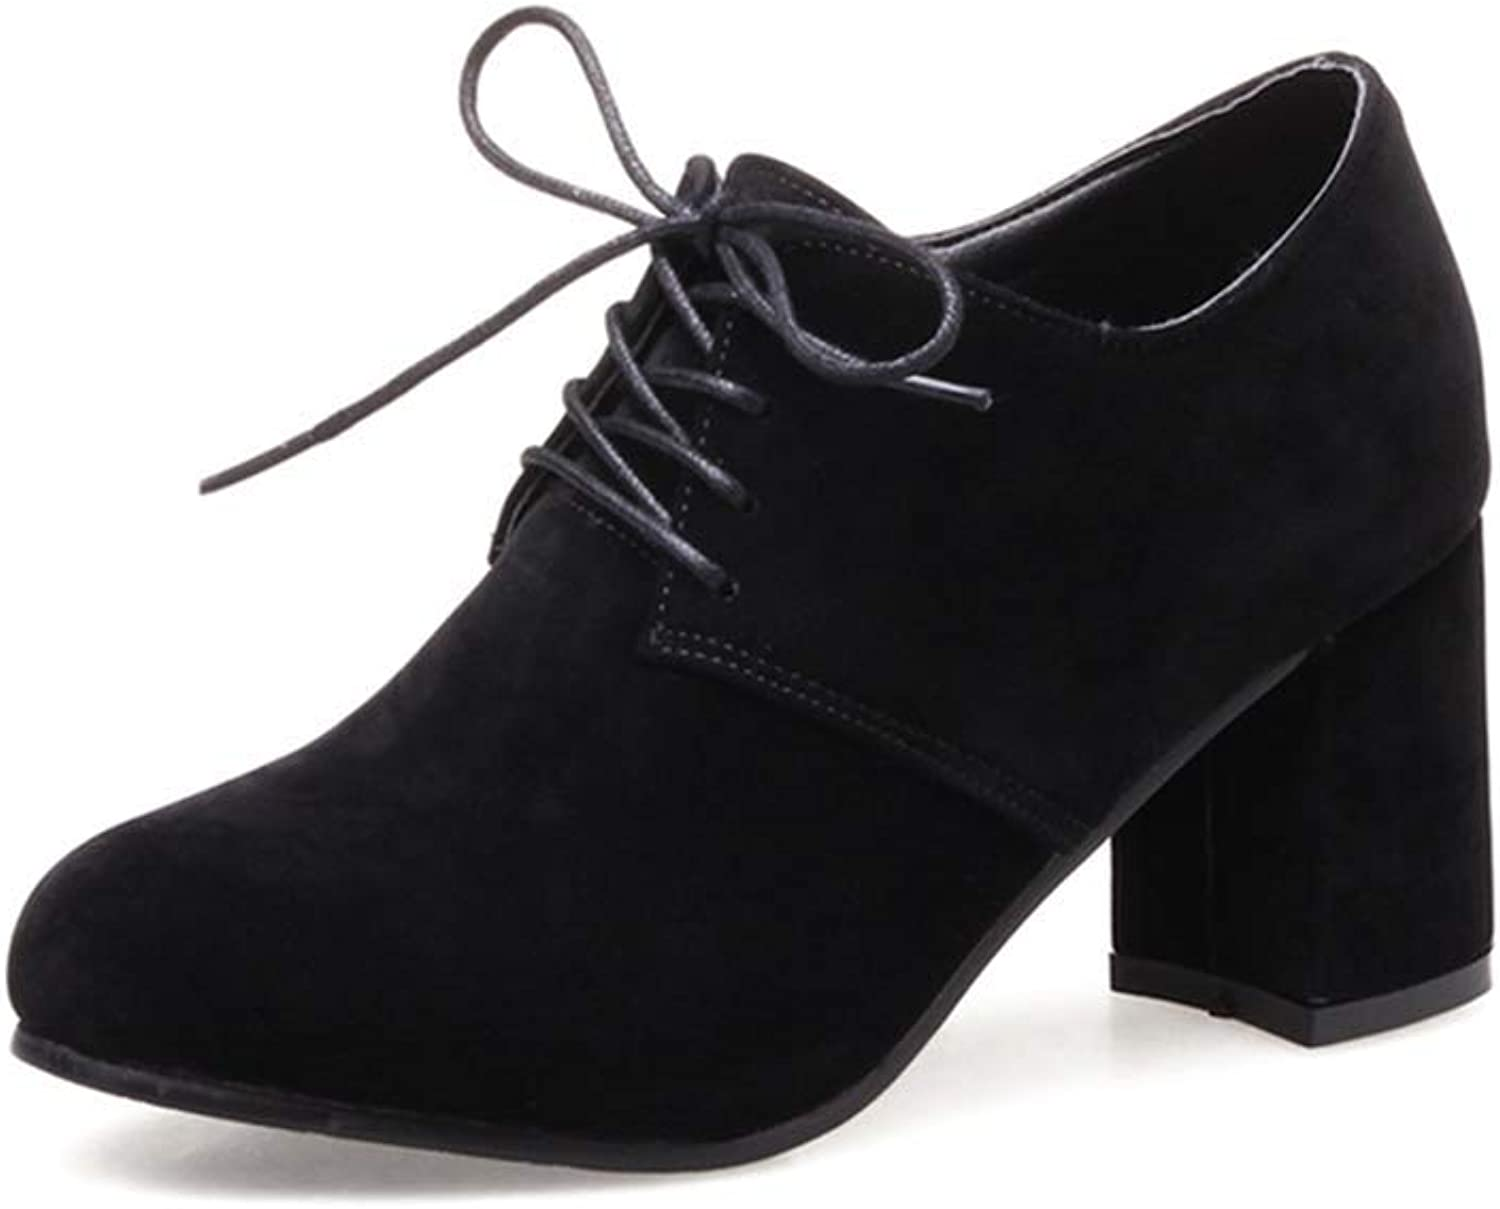 BMTH Women's Suede Lace Up Oxford Pumps Round Toe Platform Chunky High Heel Casual Dress Oxfords shoes